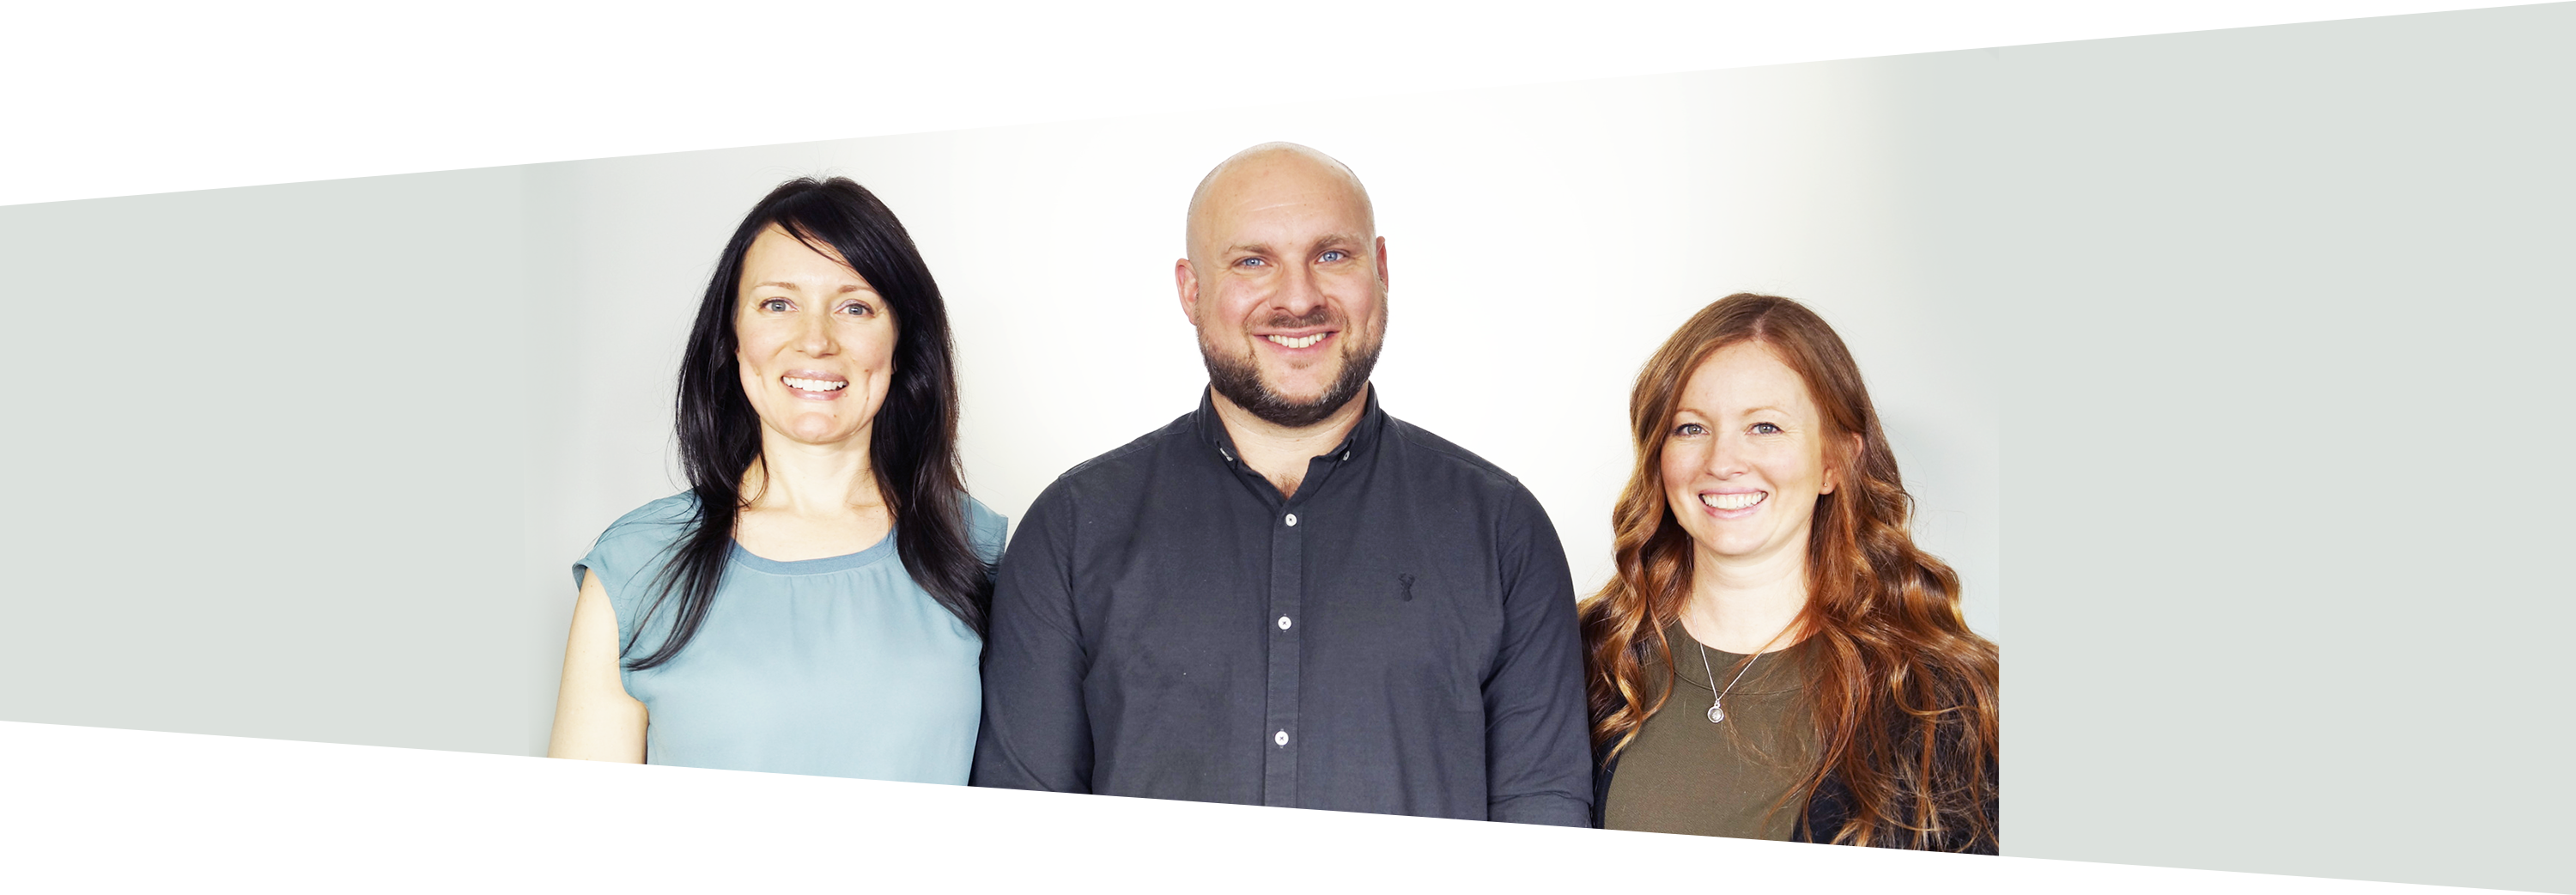 Capital Family Chiropractic team